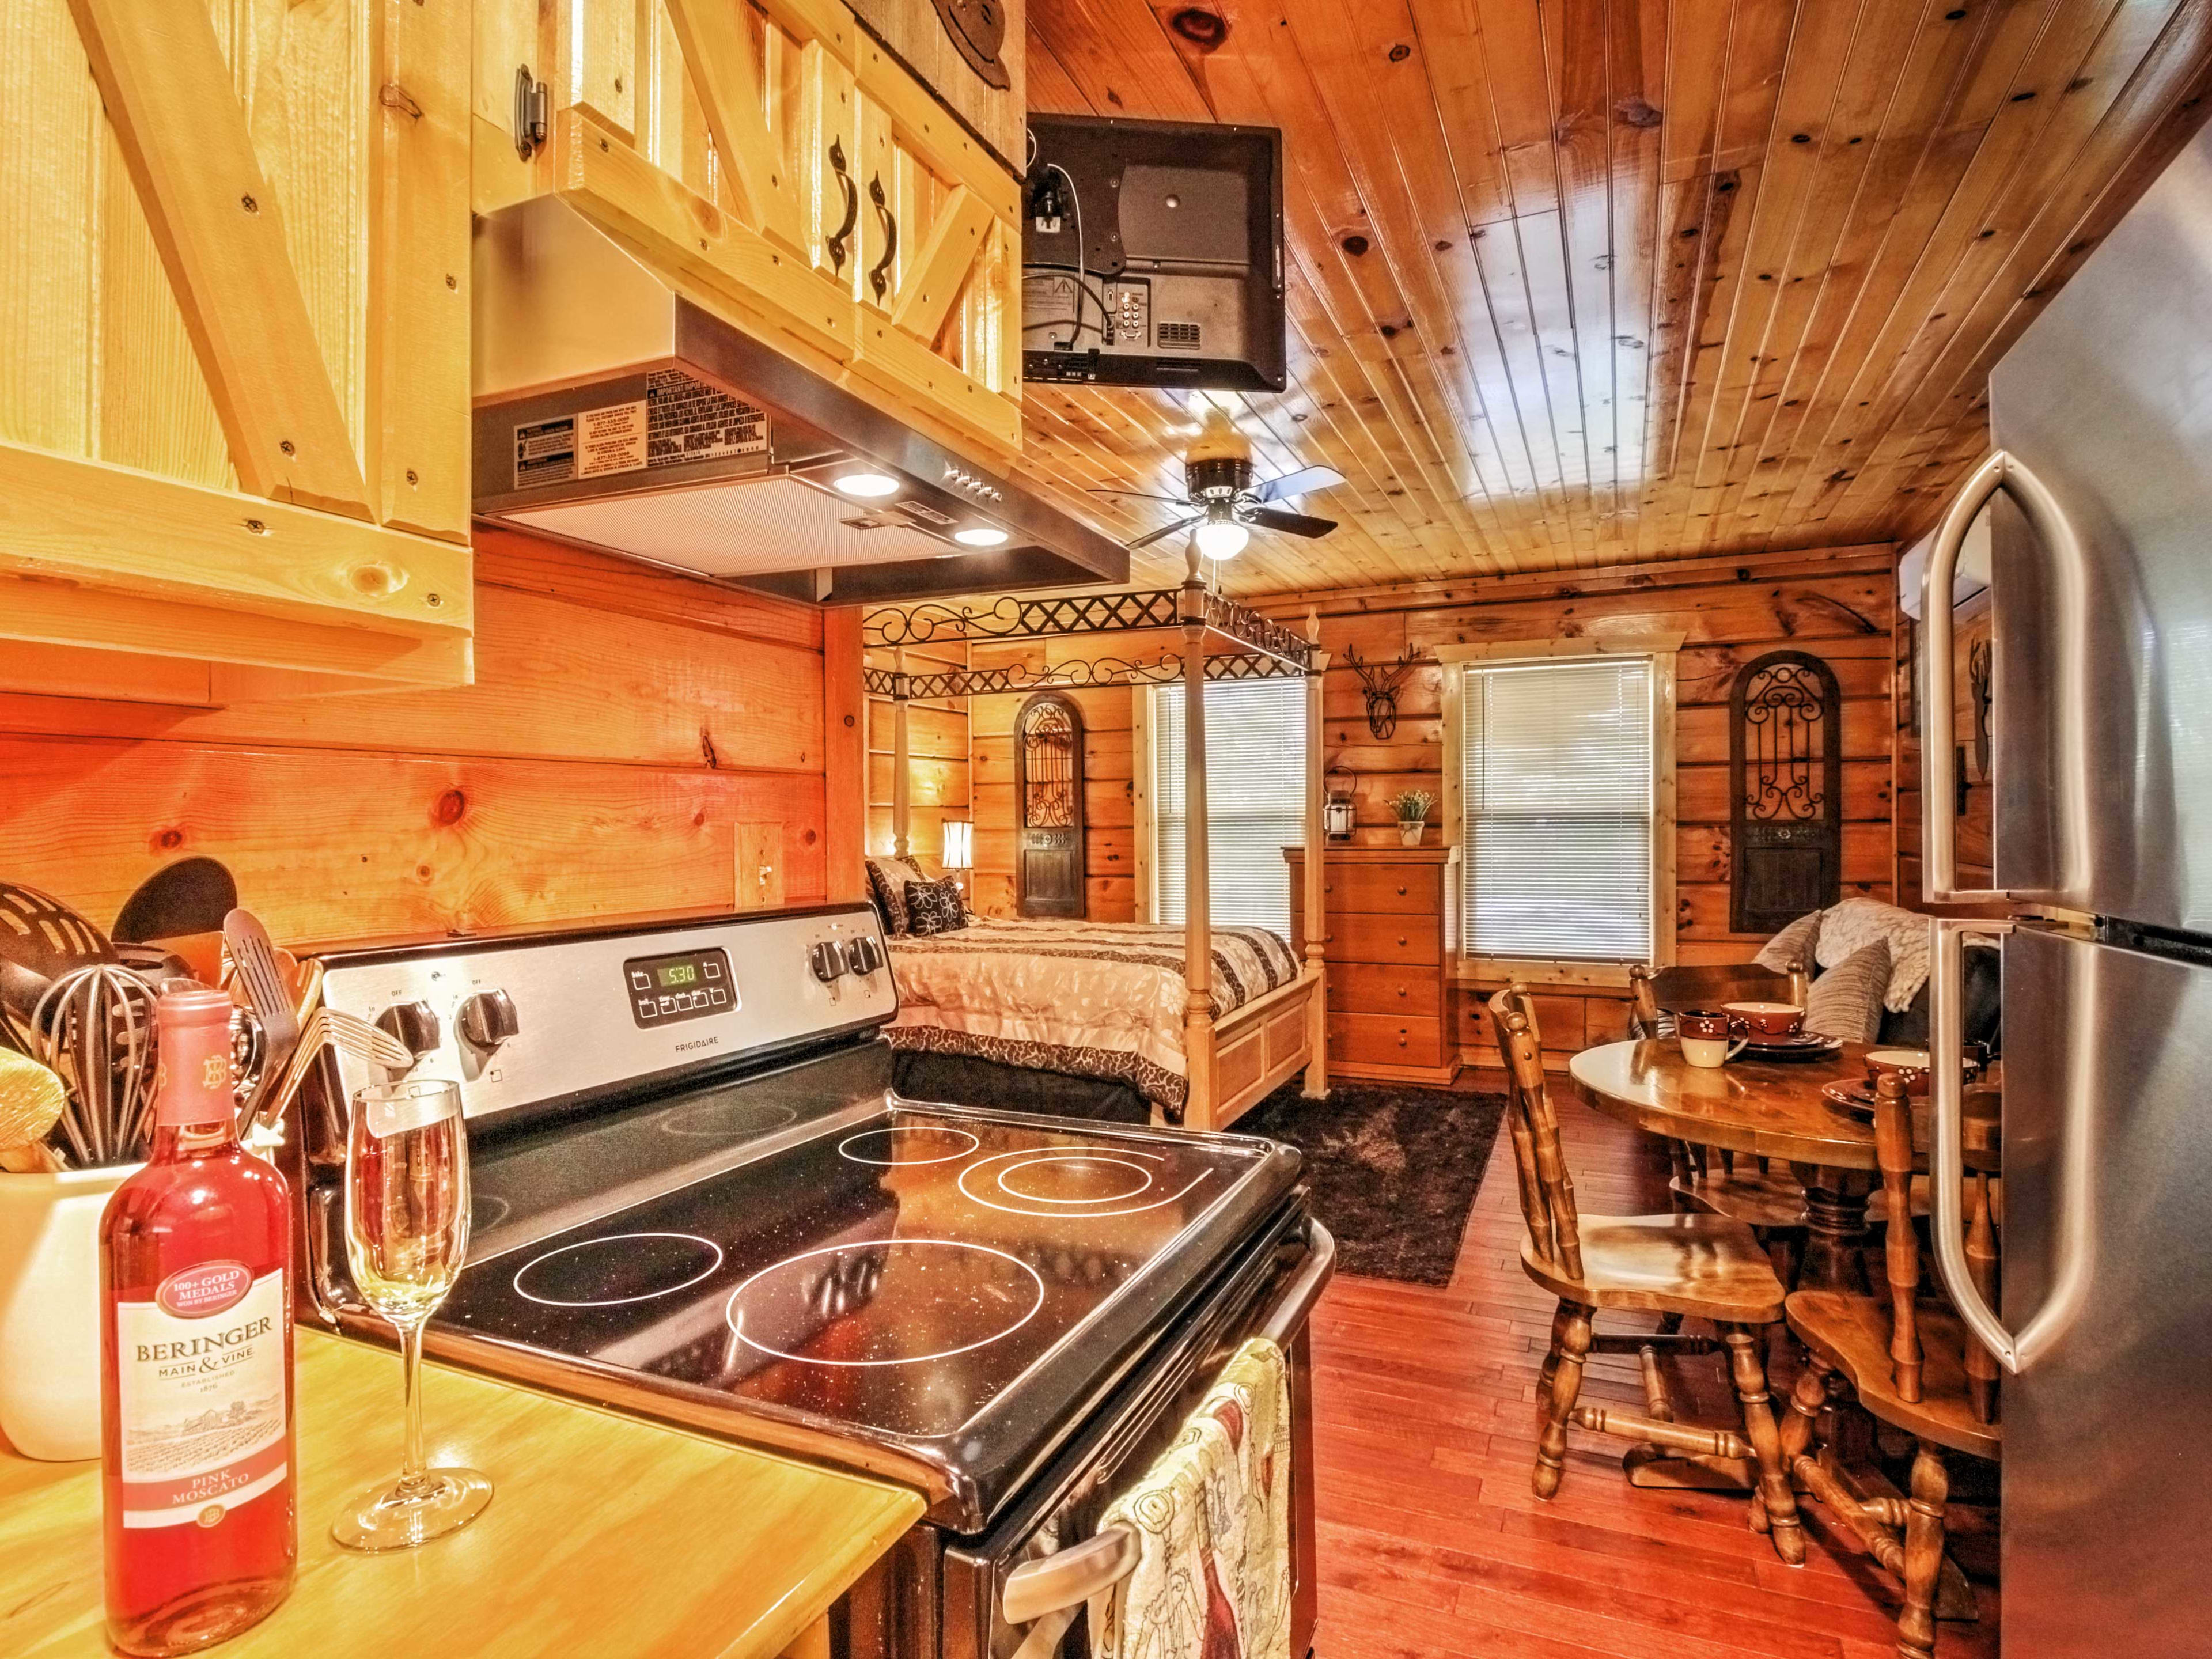 Whip up delicious home-style meals in the well-equipped kitchen.